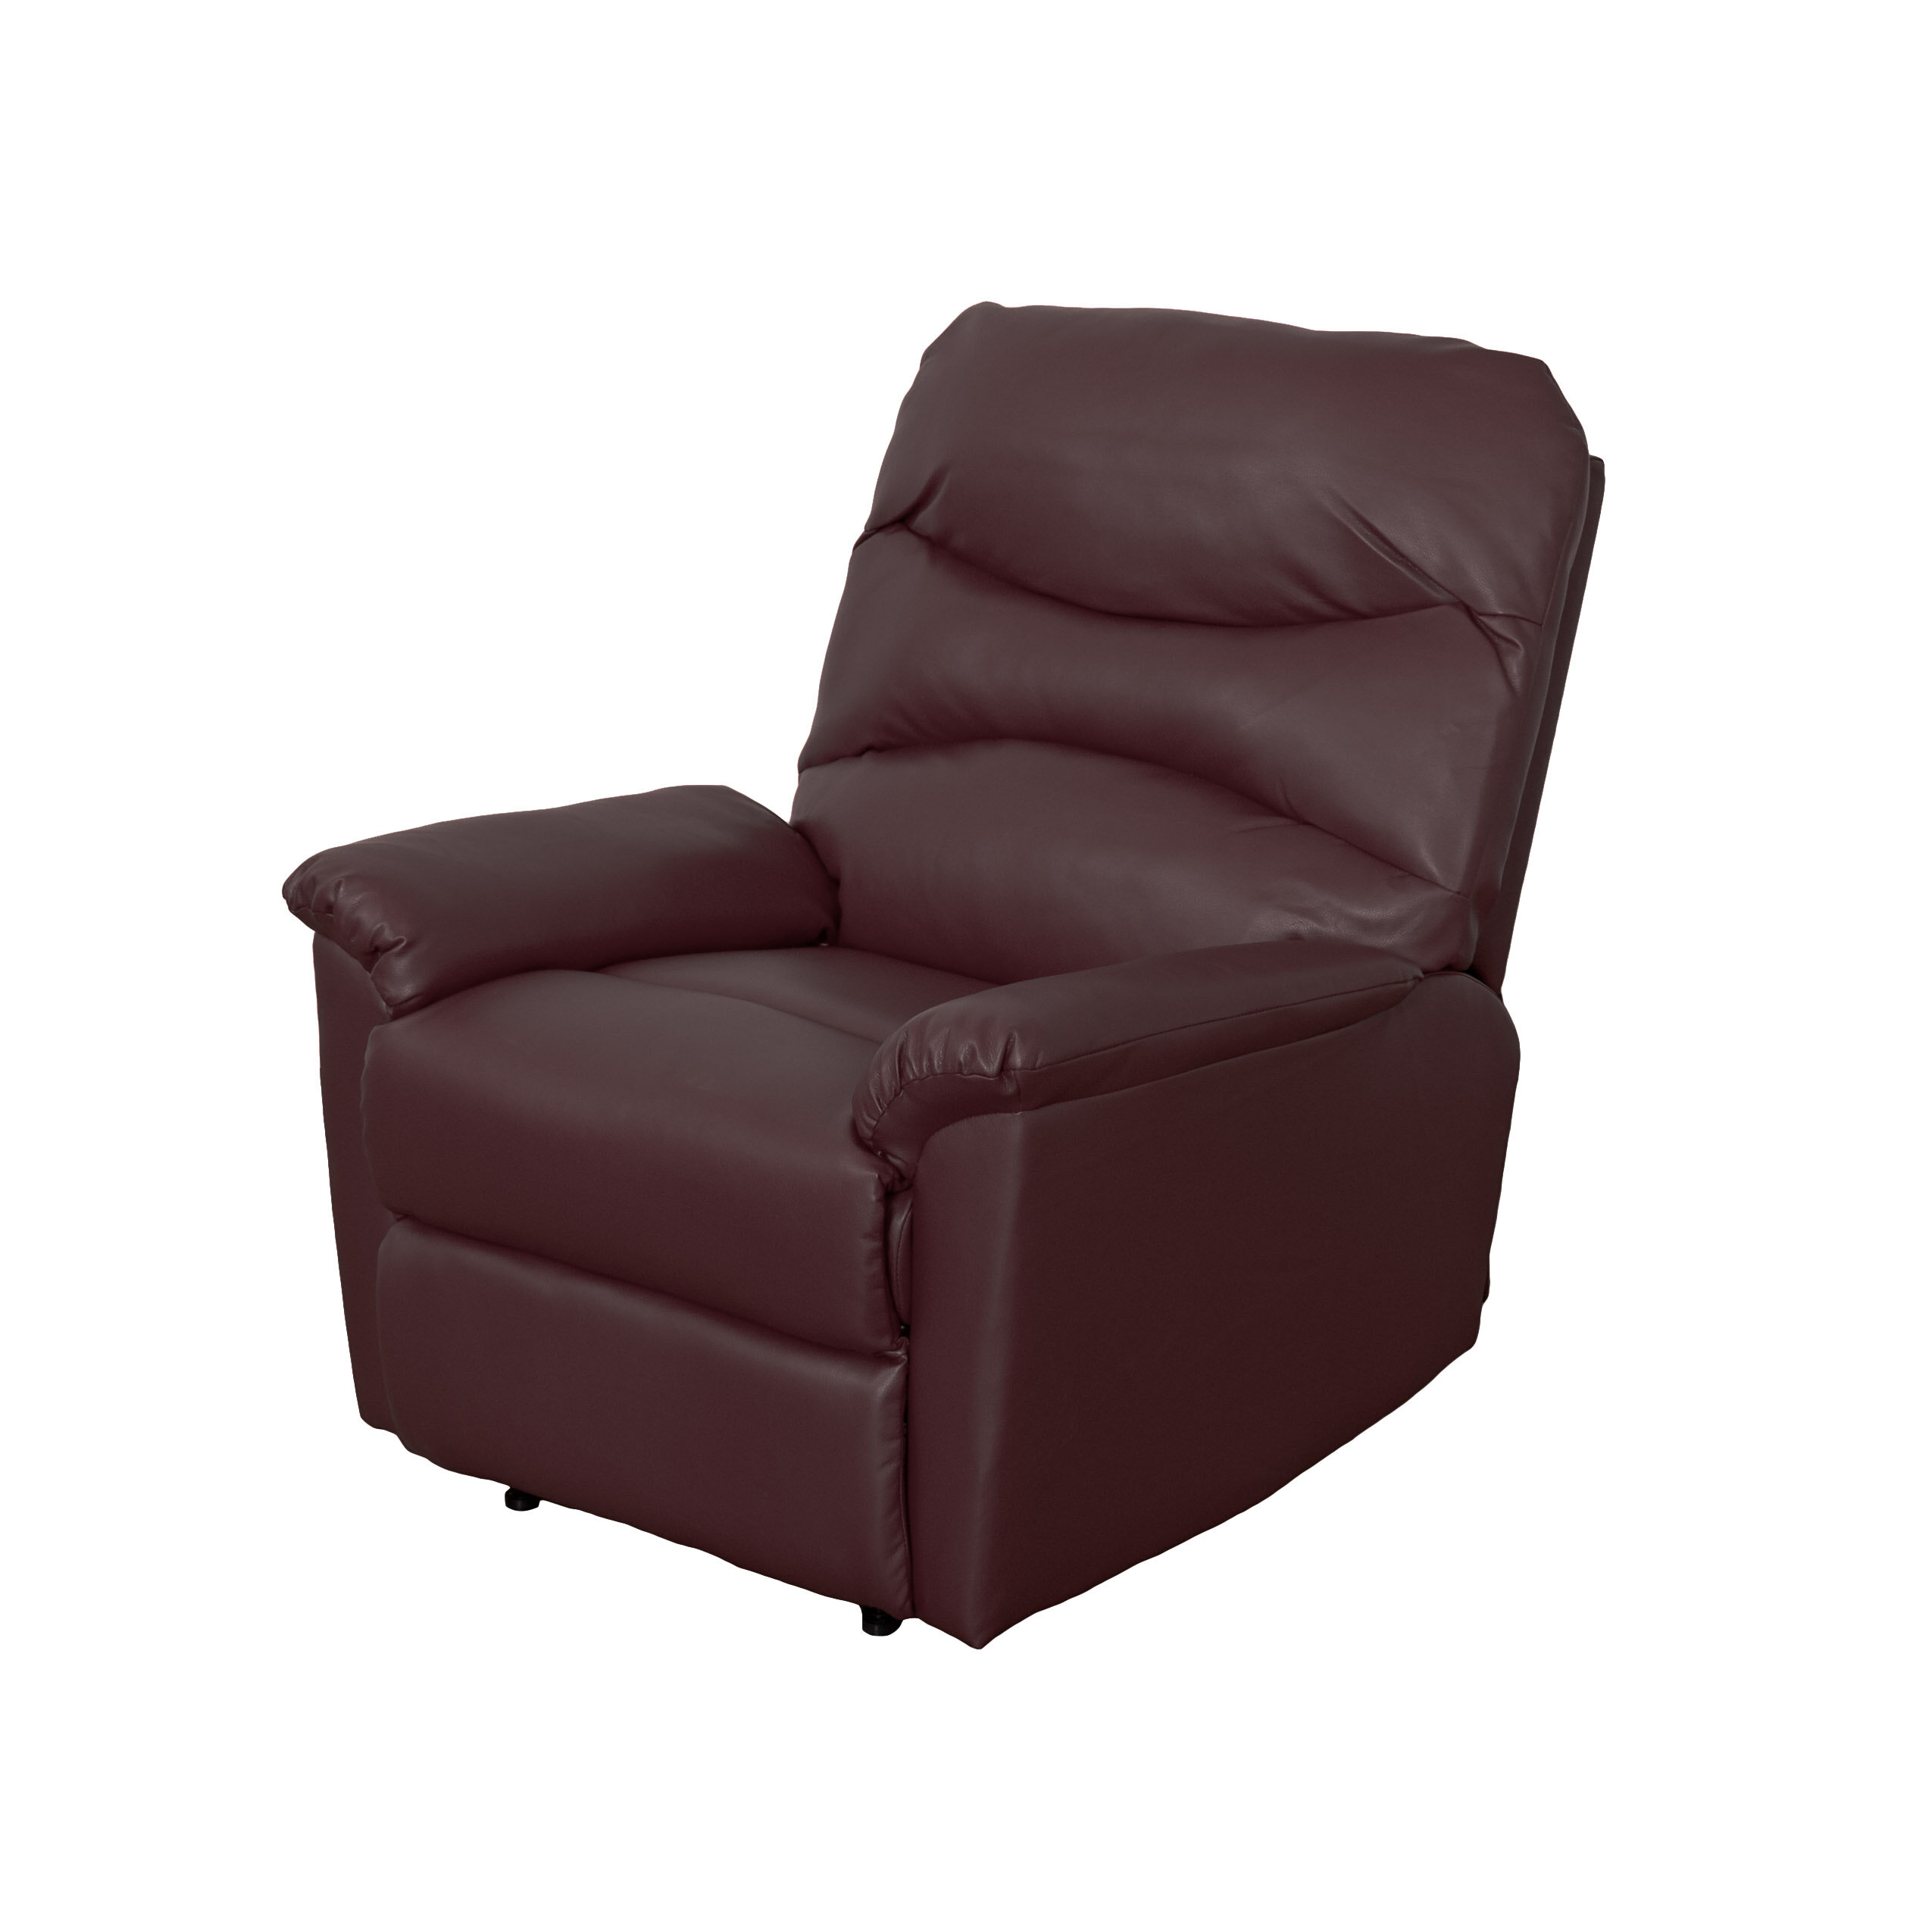 Red Barrel Studio Sexton Faux Leather Manual Recliner With Massage Reviews Wayfair